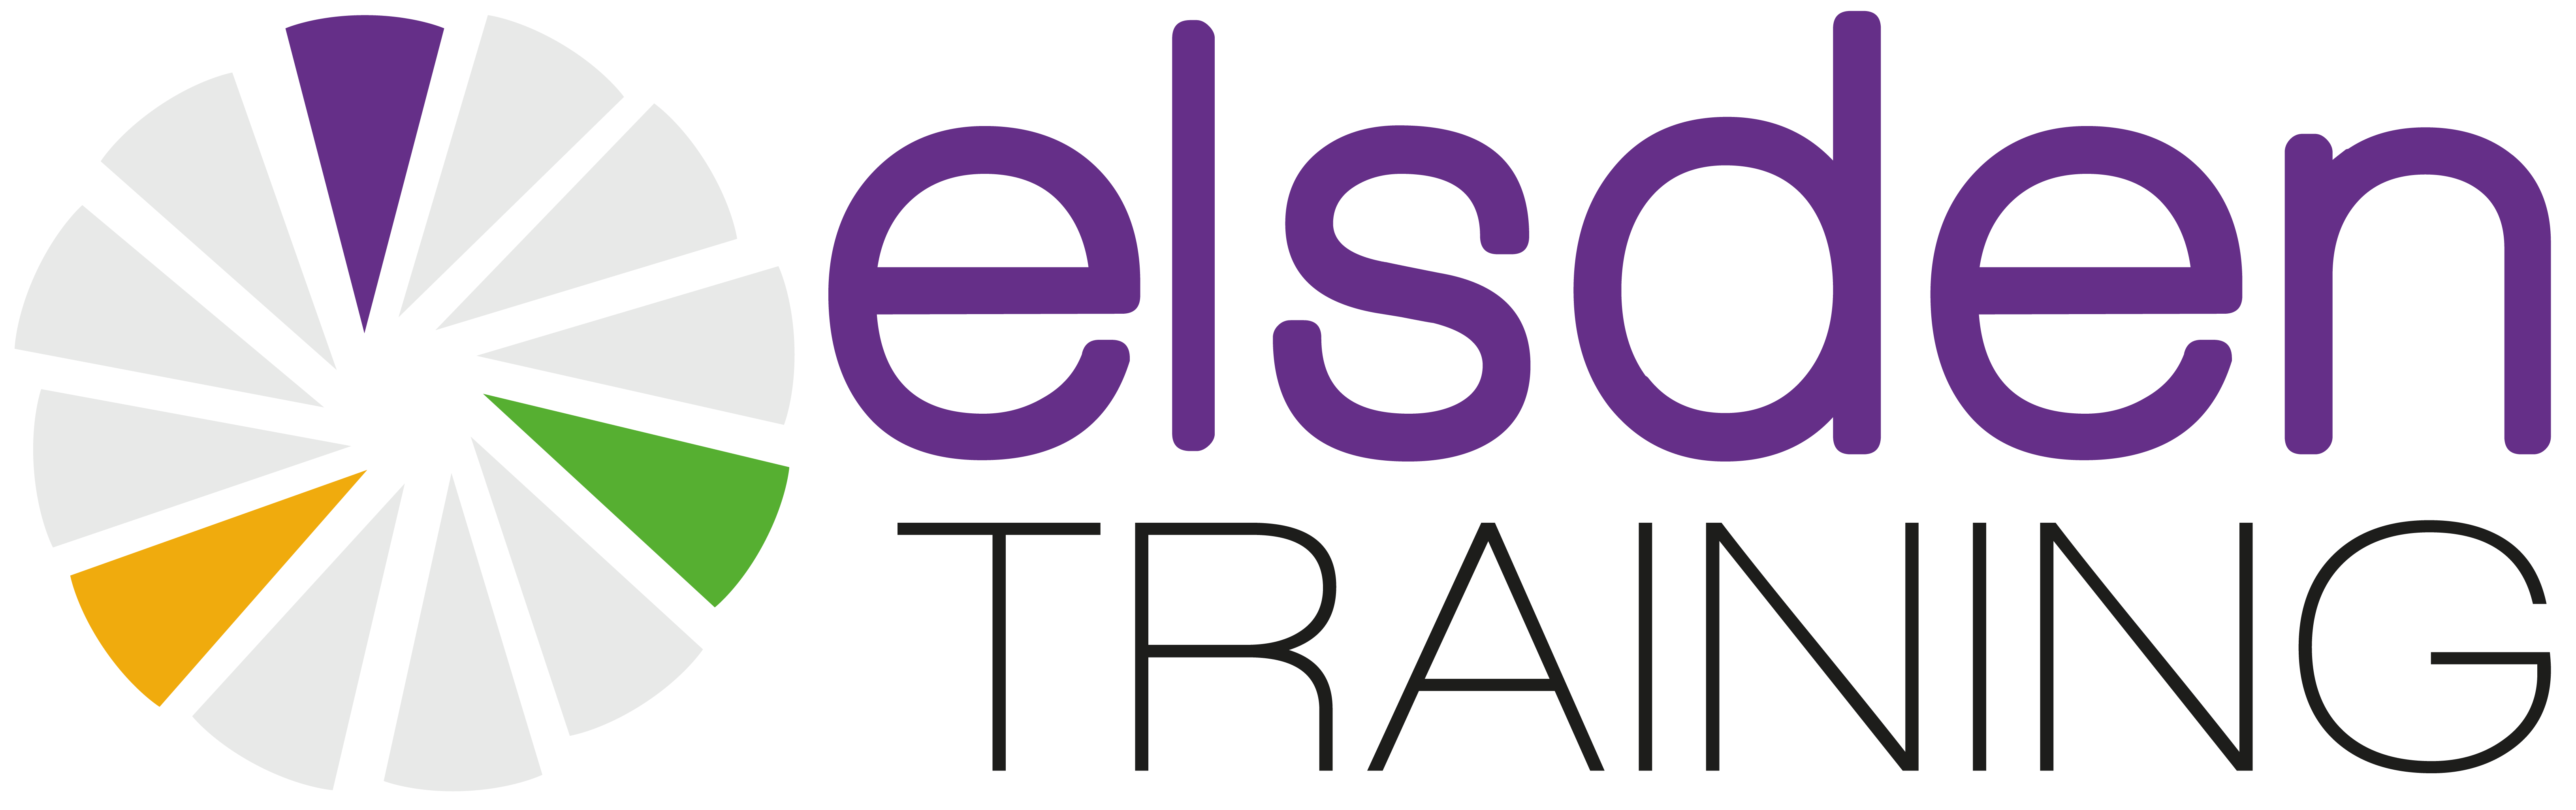 Eslden Training Logo